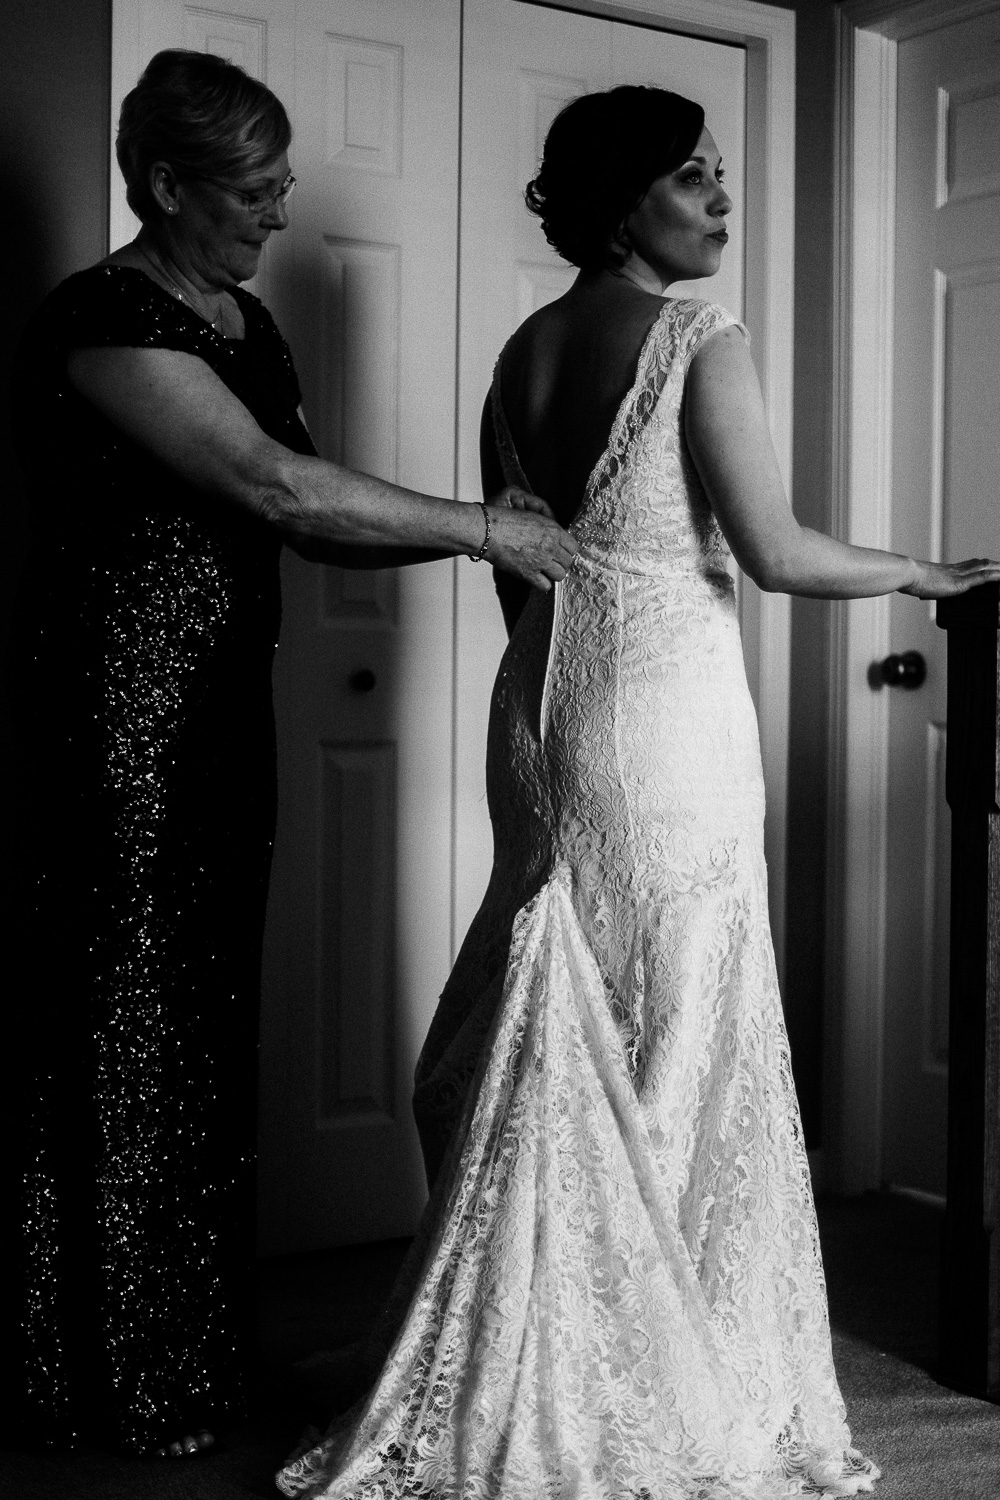 Mother of the bride zipping up the back of bride's low-back lace dress